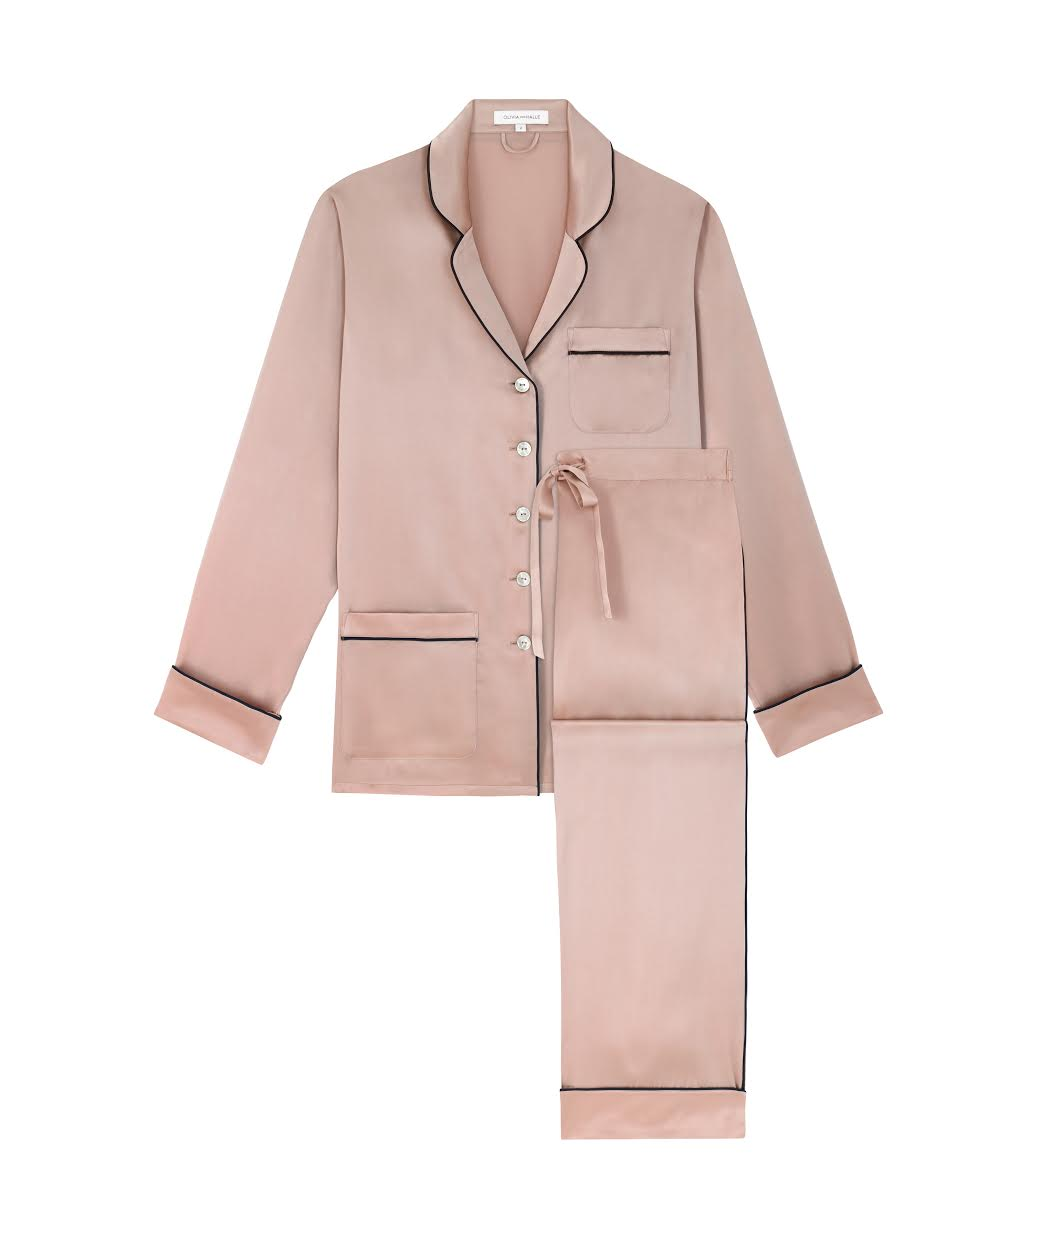 OLIVIA VON HALLE COCO OYSTER SILK PYJAMA, AVAILABLE AT OLIVIA VON HALLE